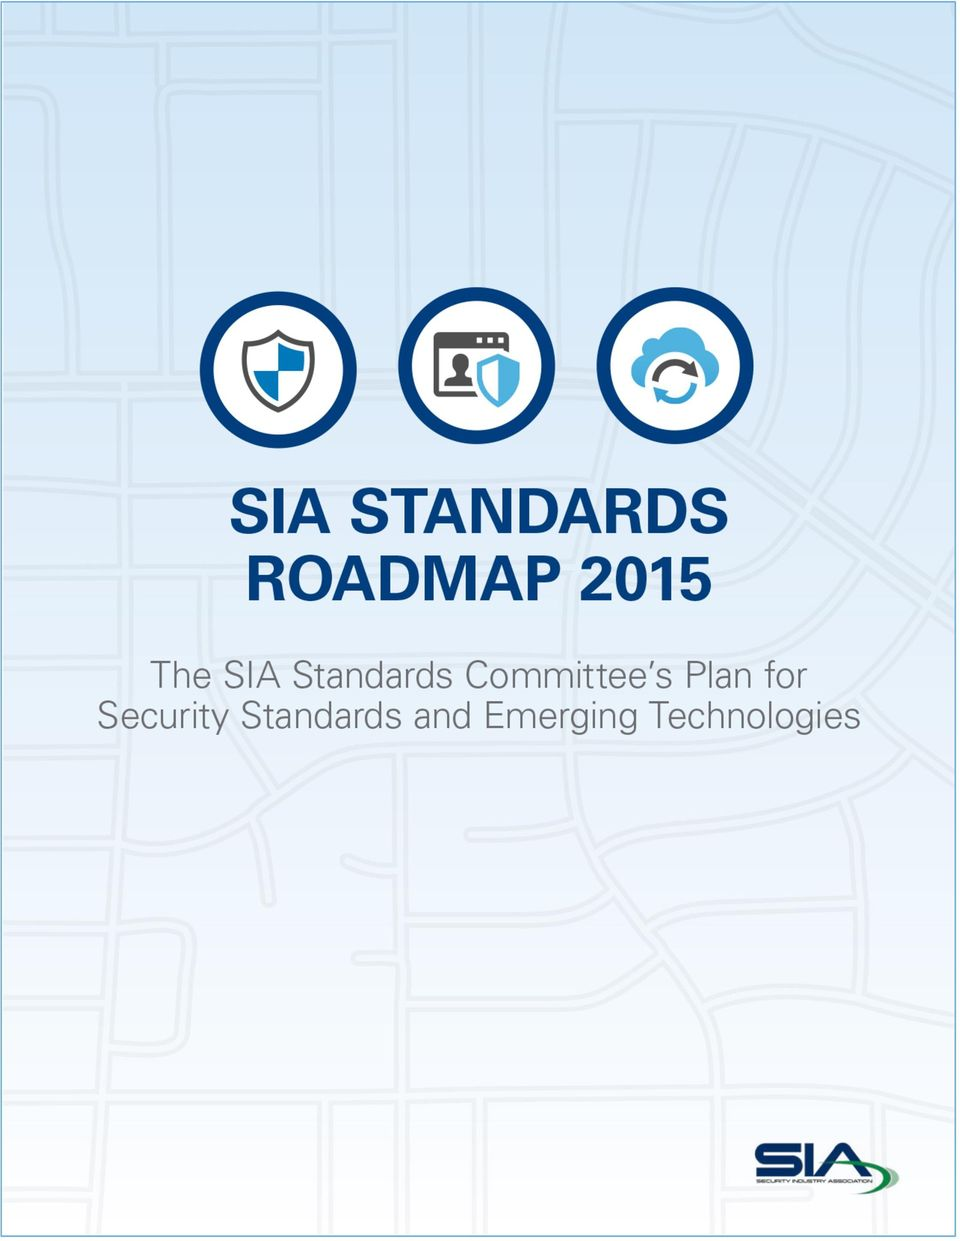 The SIA Standards Roadmap describes the strategies for